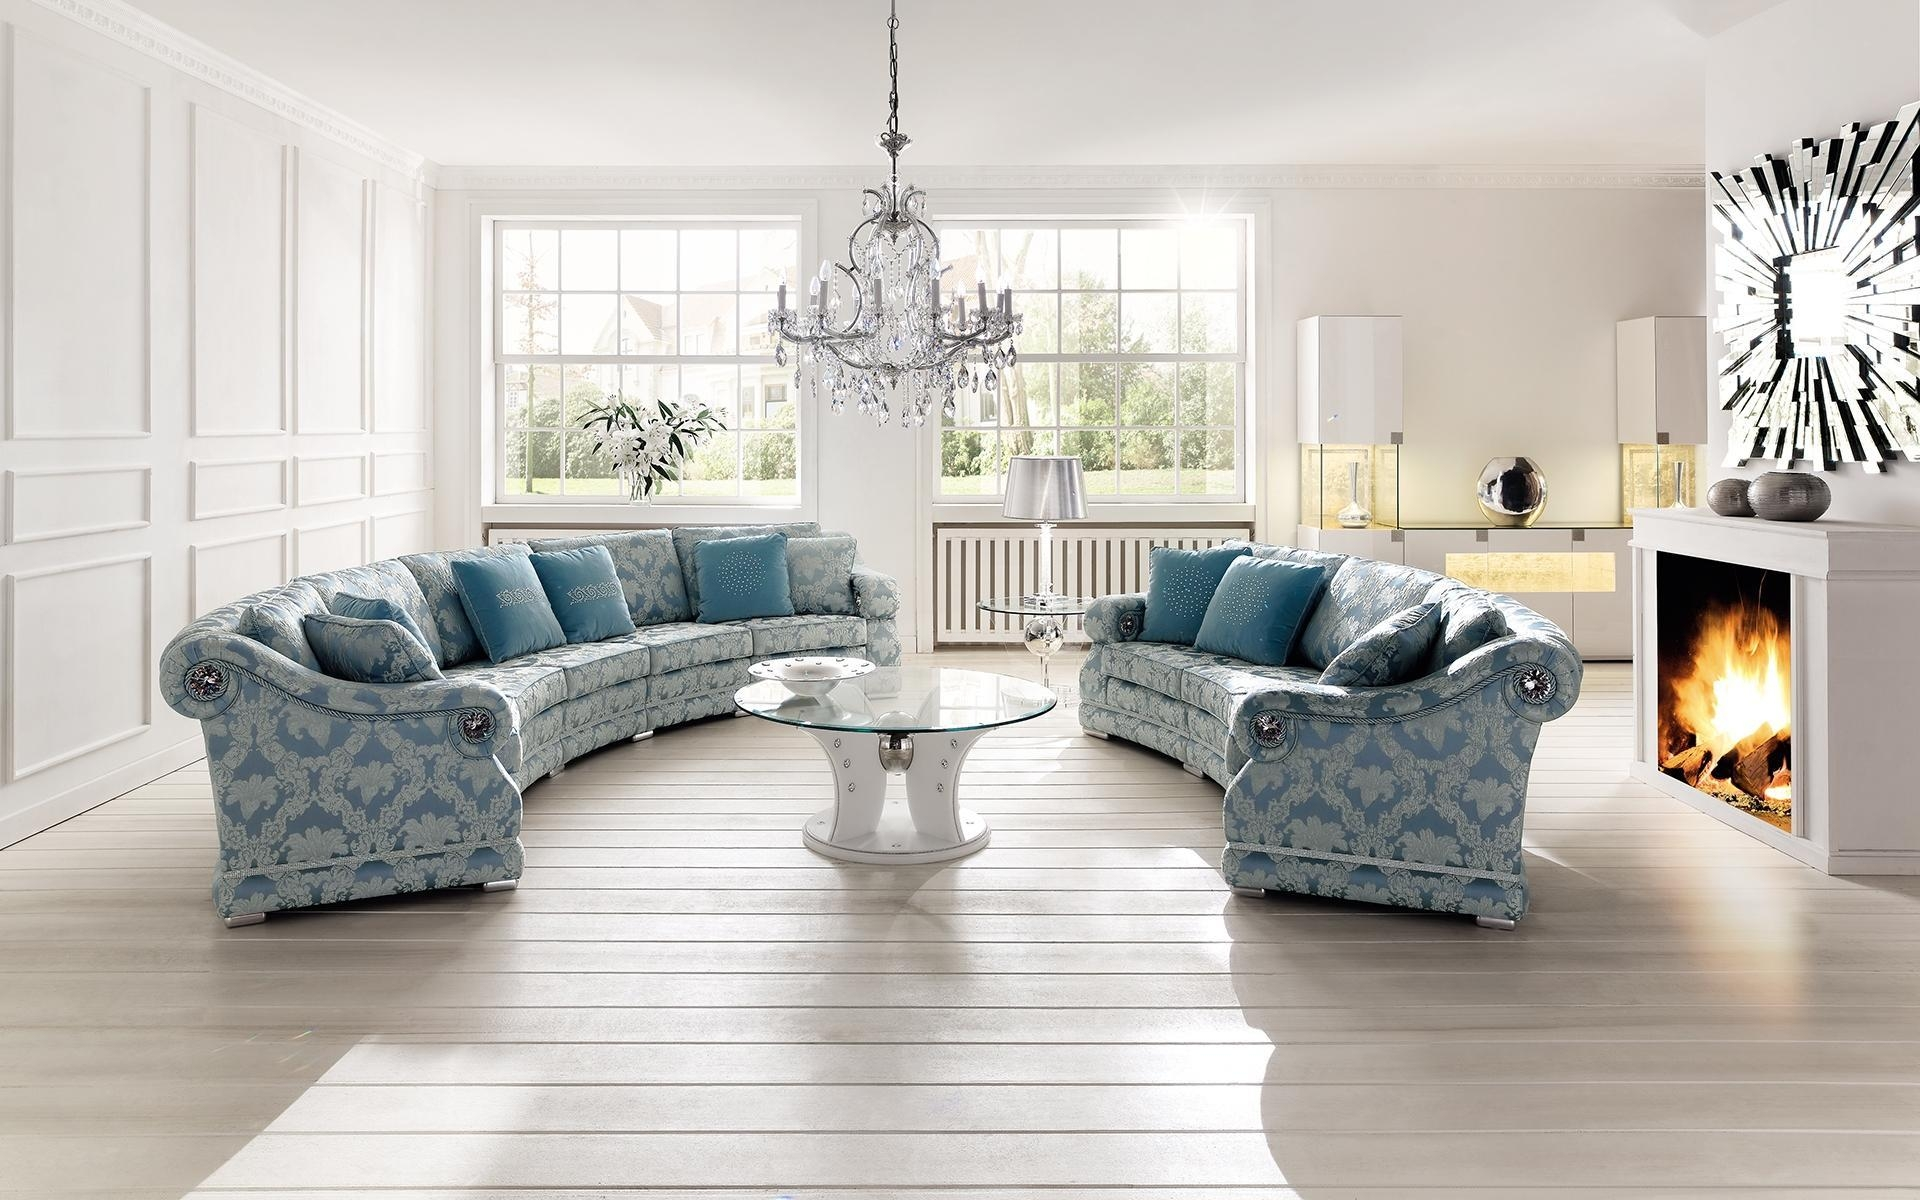 Best Modest Floral Sofas And Chairs #1658 Throughout Floral Sofas And Chairs (View 12 of 20)